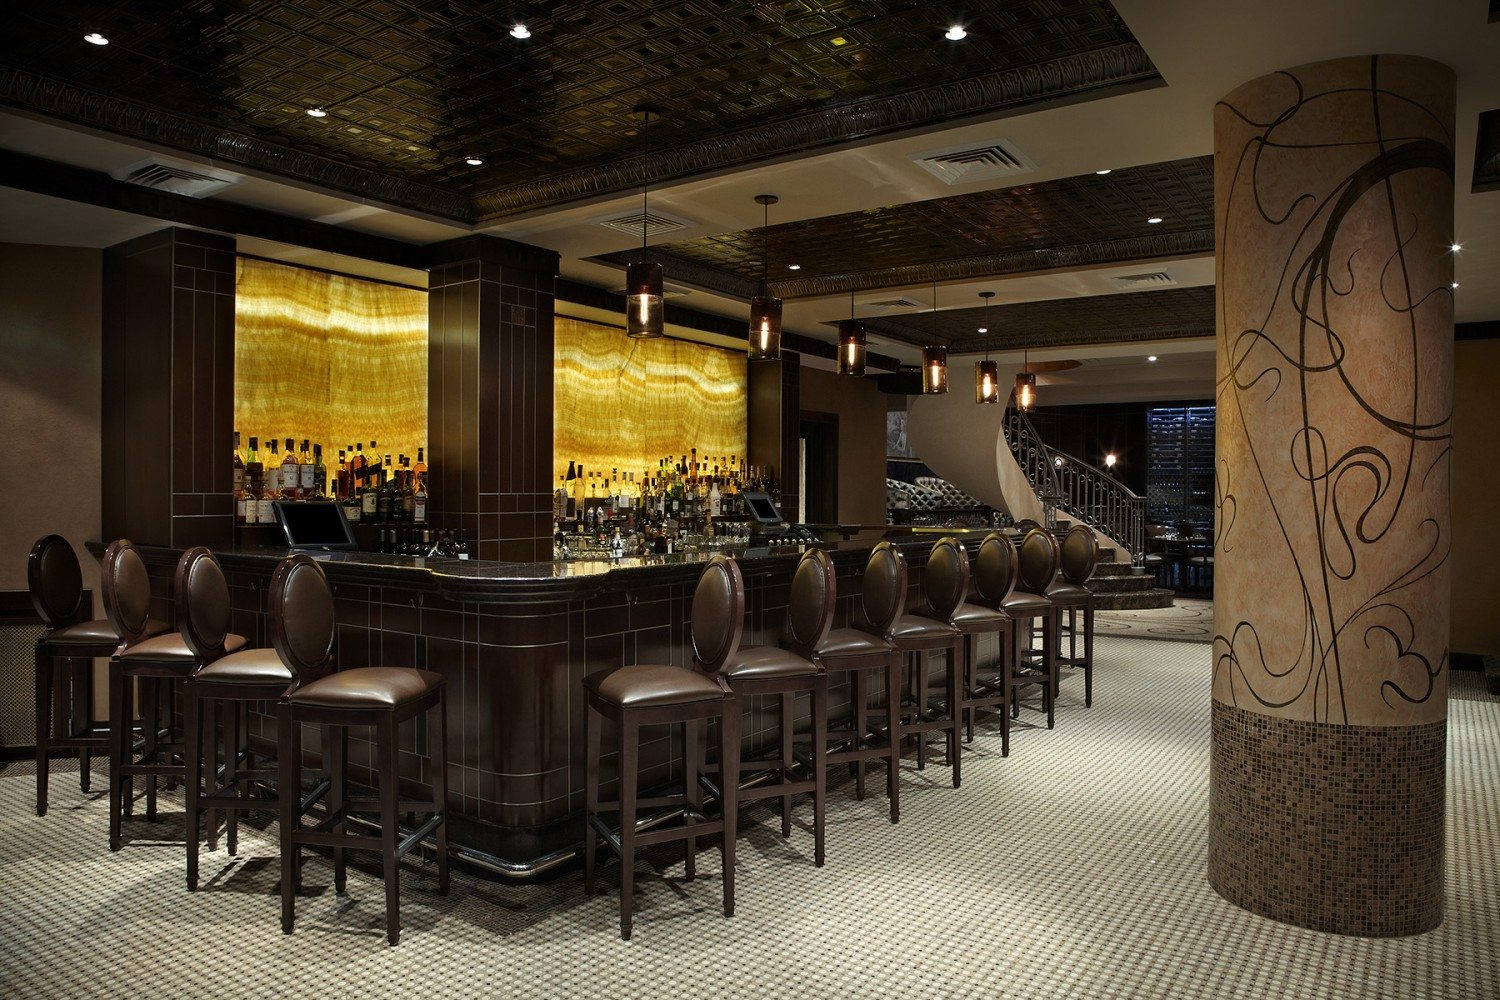 Empire Steak House: Old New York Elegance With Top Shelf Food and Service - Downtown Magazine